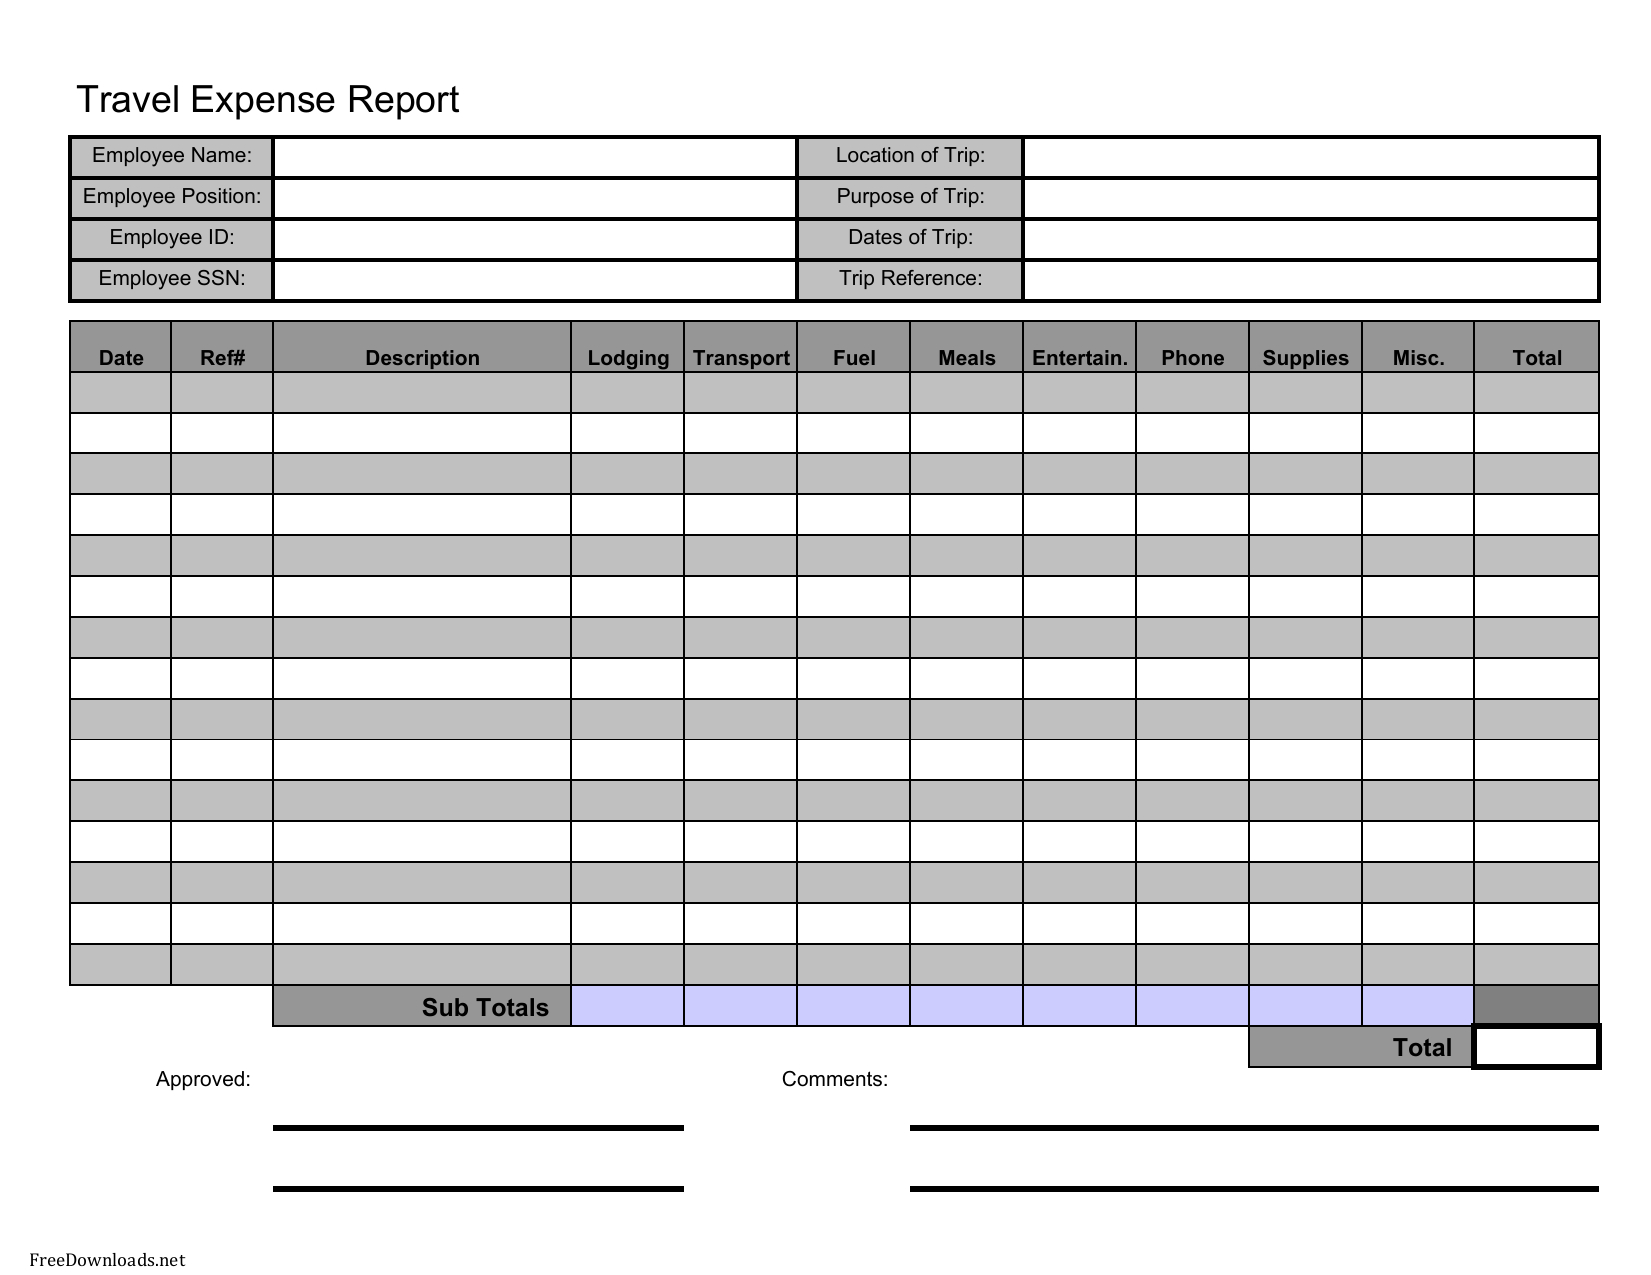 Travel Expense Spreadsheet For Download Travel Expense